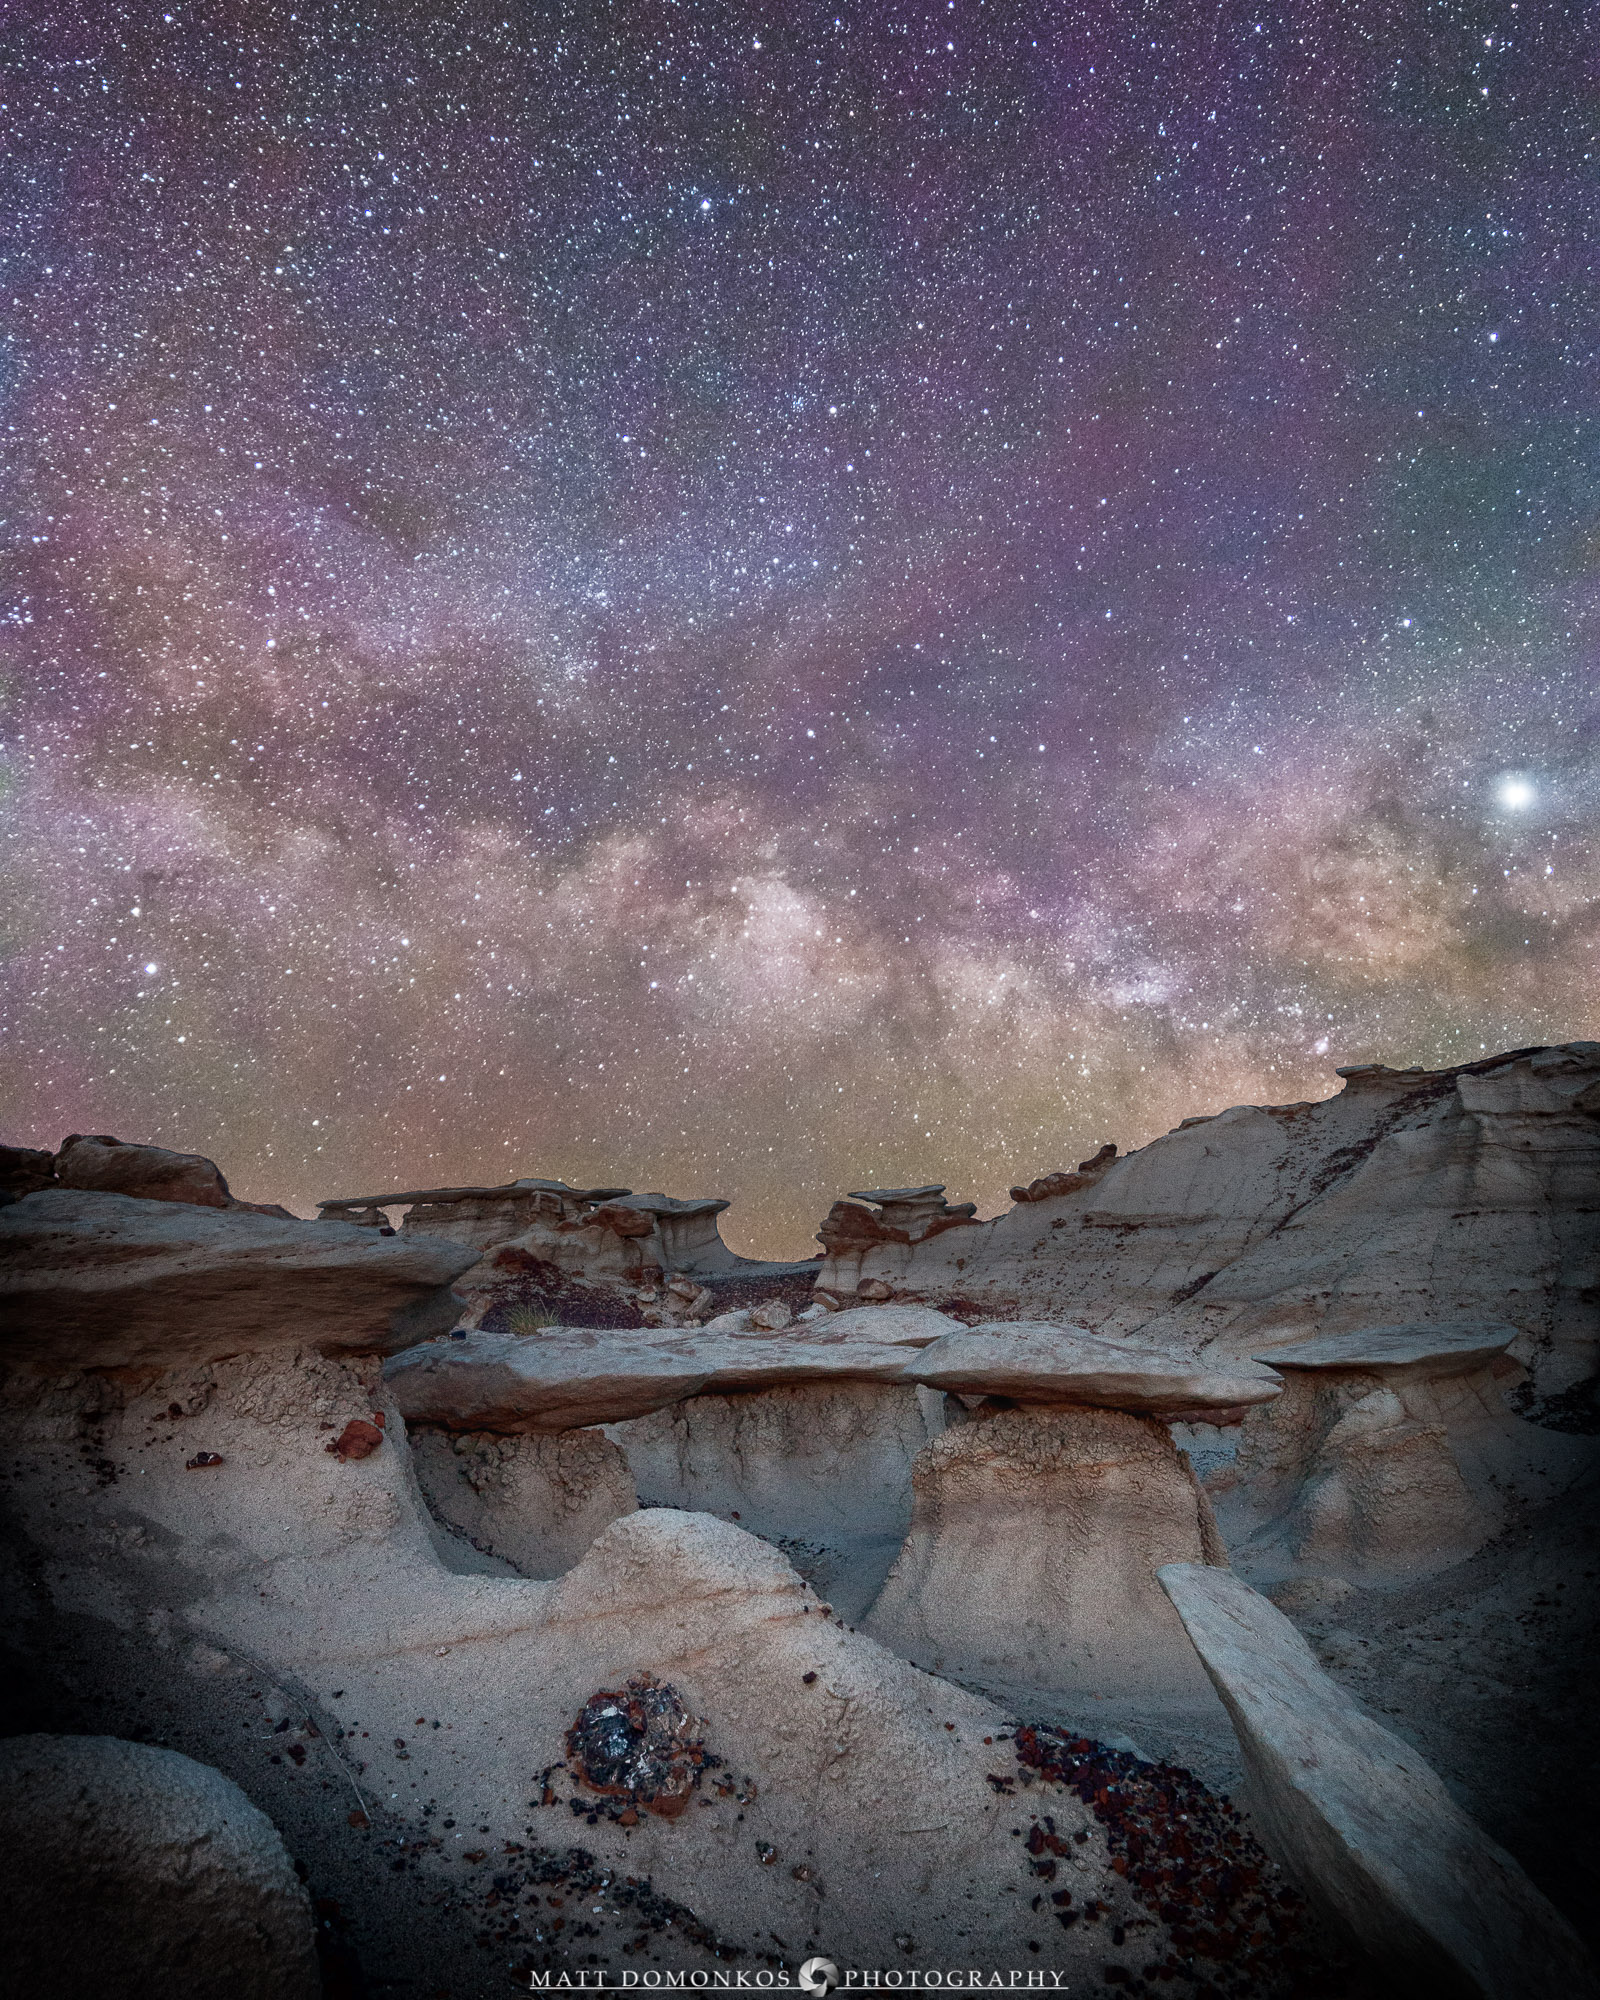 Prominent Jupiter overlooks the scene at the Bisti Badlands.   At the tail end of three nights of shooting, I had little energy to hike further into the formation than this location! Fortunately, Bisti is rich with its characteristic hoodoos and unusual formations. One of two scenes composed using blue hour imagery of the landscape this night.   In this case, I used my kit--a Canon 70D and a 14mm f2.8 Rokinon lens. I shoot a 10 s exposures generally with this set up, a little less than half what the 500 rule recommends. At ISO 6400 or even 3200, the images still accumulate enough light to differentiate colors with limited noise.   Probably the best investment in improving the signal to noise in my images has been the Starry Landscape Stacker software. Made from 10 light frames by Starry Landscape Stacker 1.8.0. Algorithm: Mean Min Hor Noise.   Cheers!